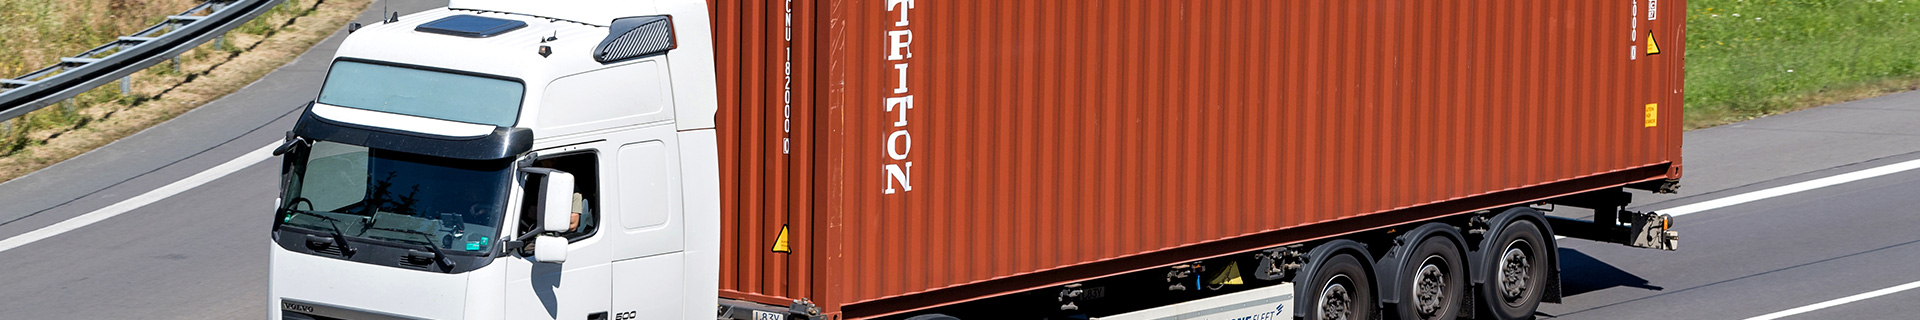 Vehicle Inspections: Intermodal Chassis